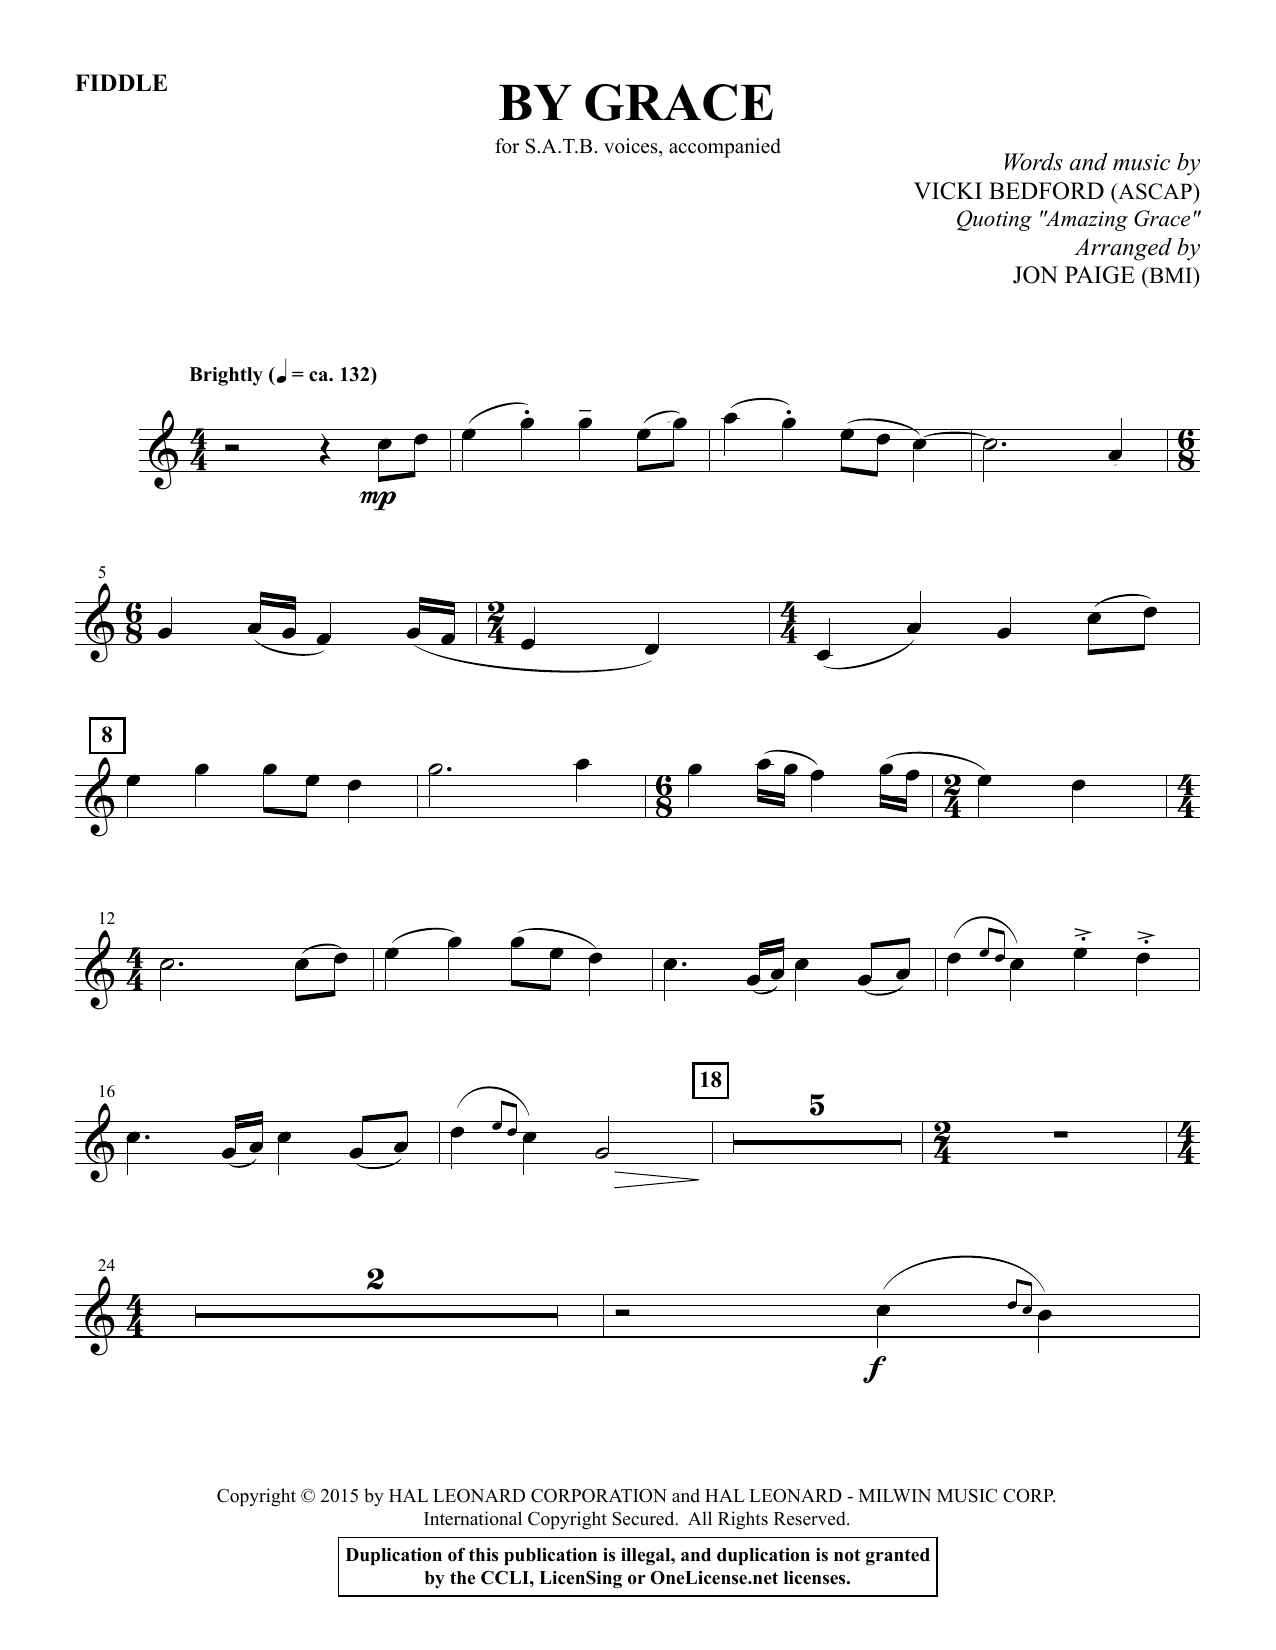 By Grace - Acoustic Guitar sheet music